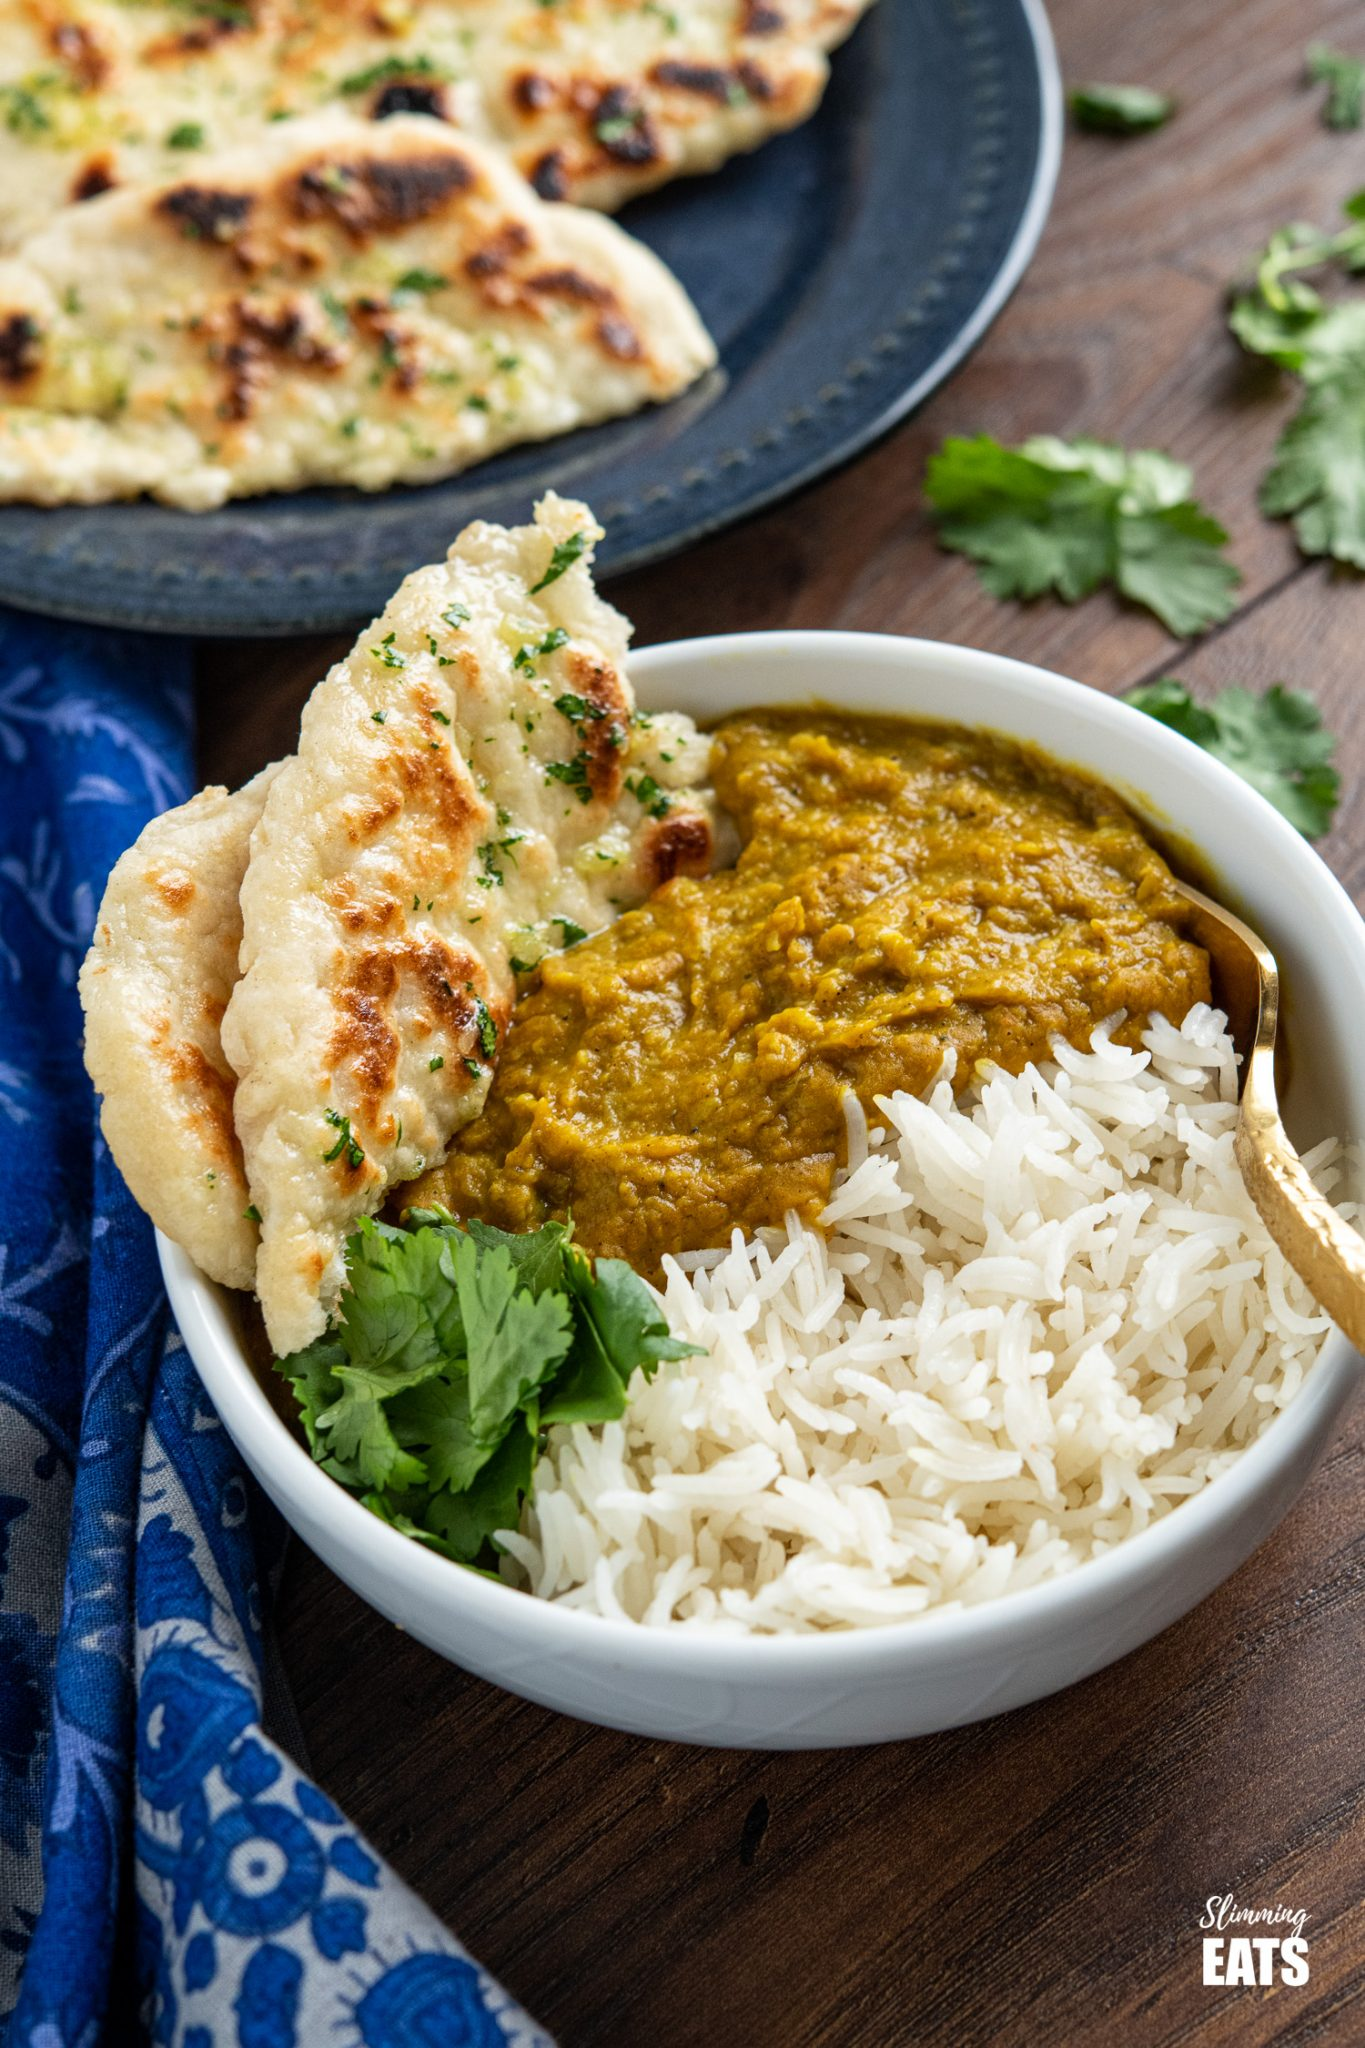 Garlic Greek Yoghurt Naan Bread in white bowl with dhal and rice